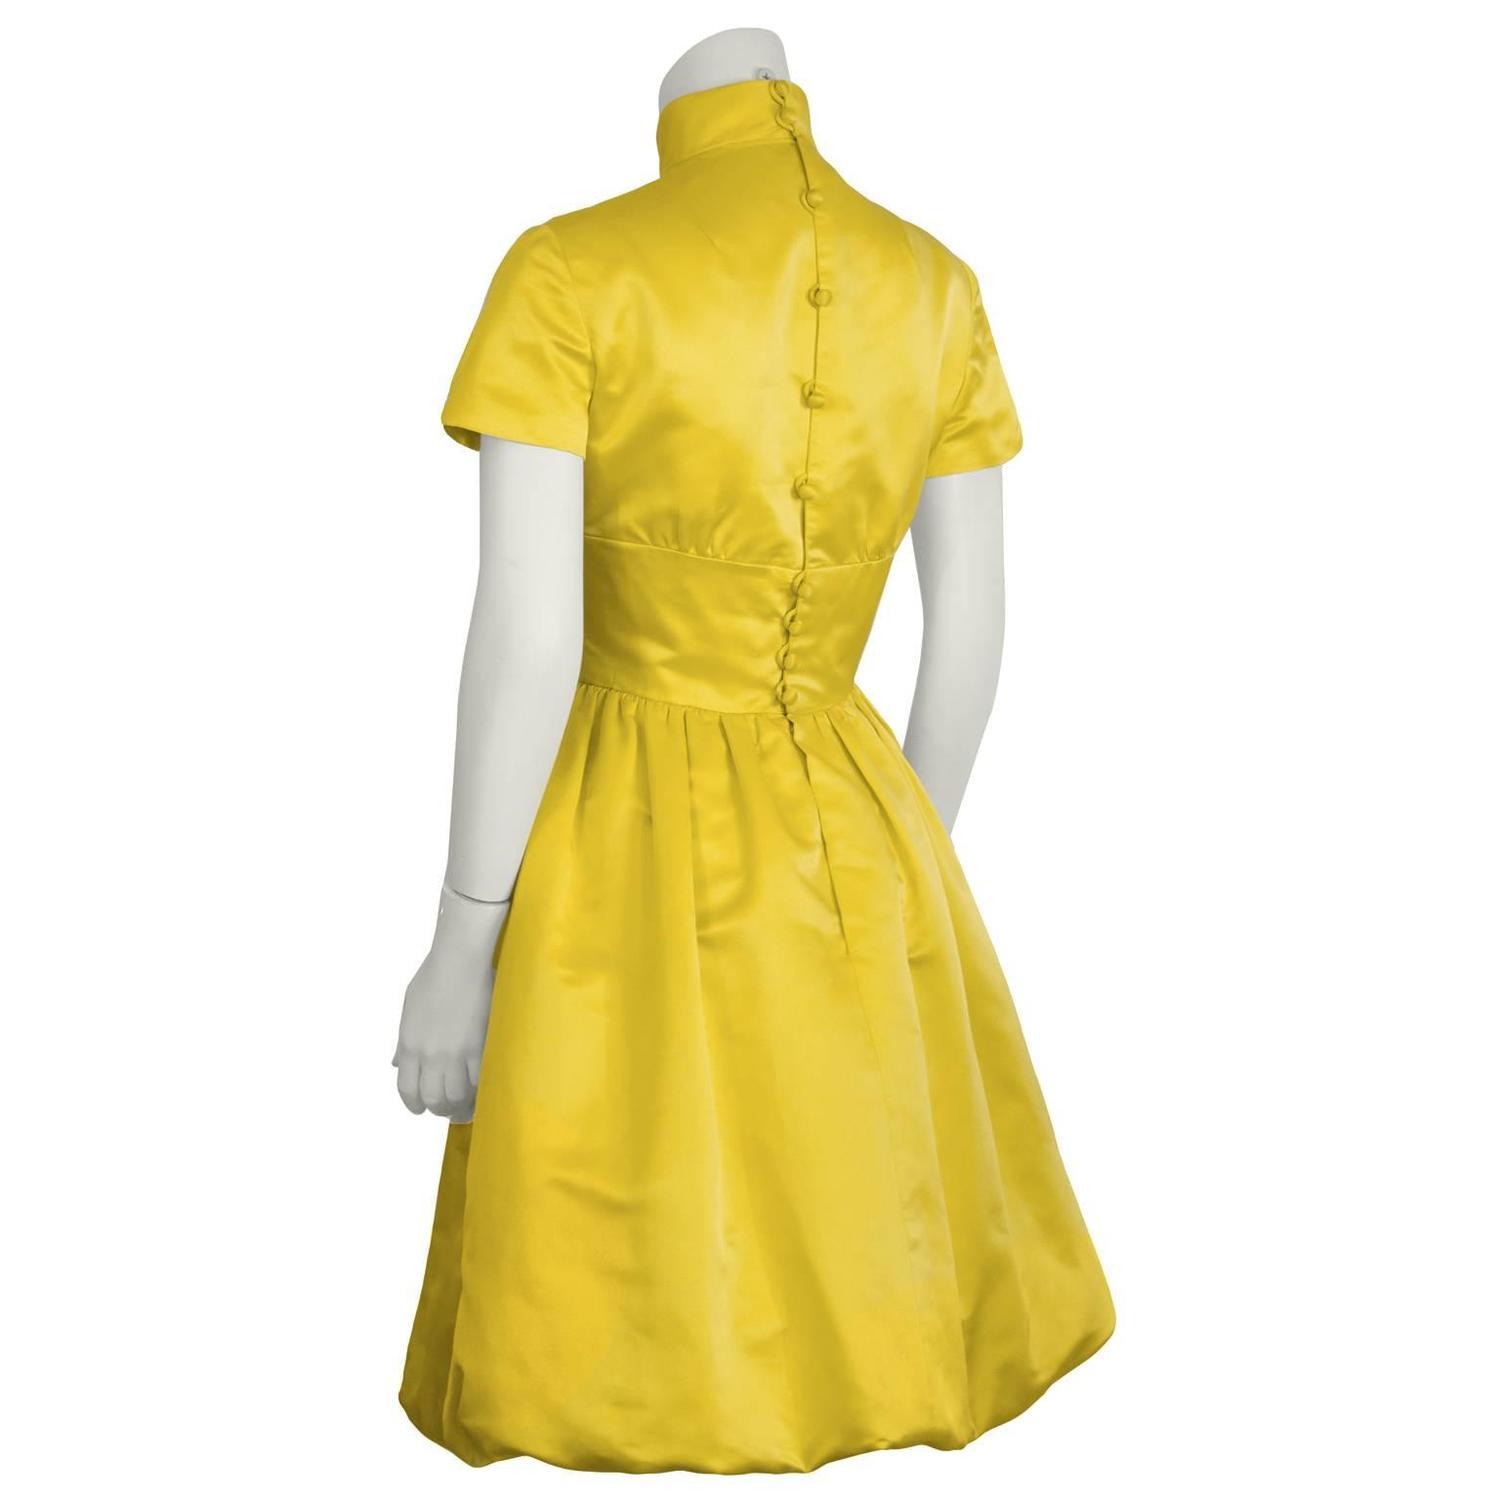 Yellow Cocktail Dresses For Sale 62